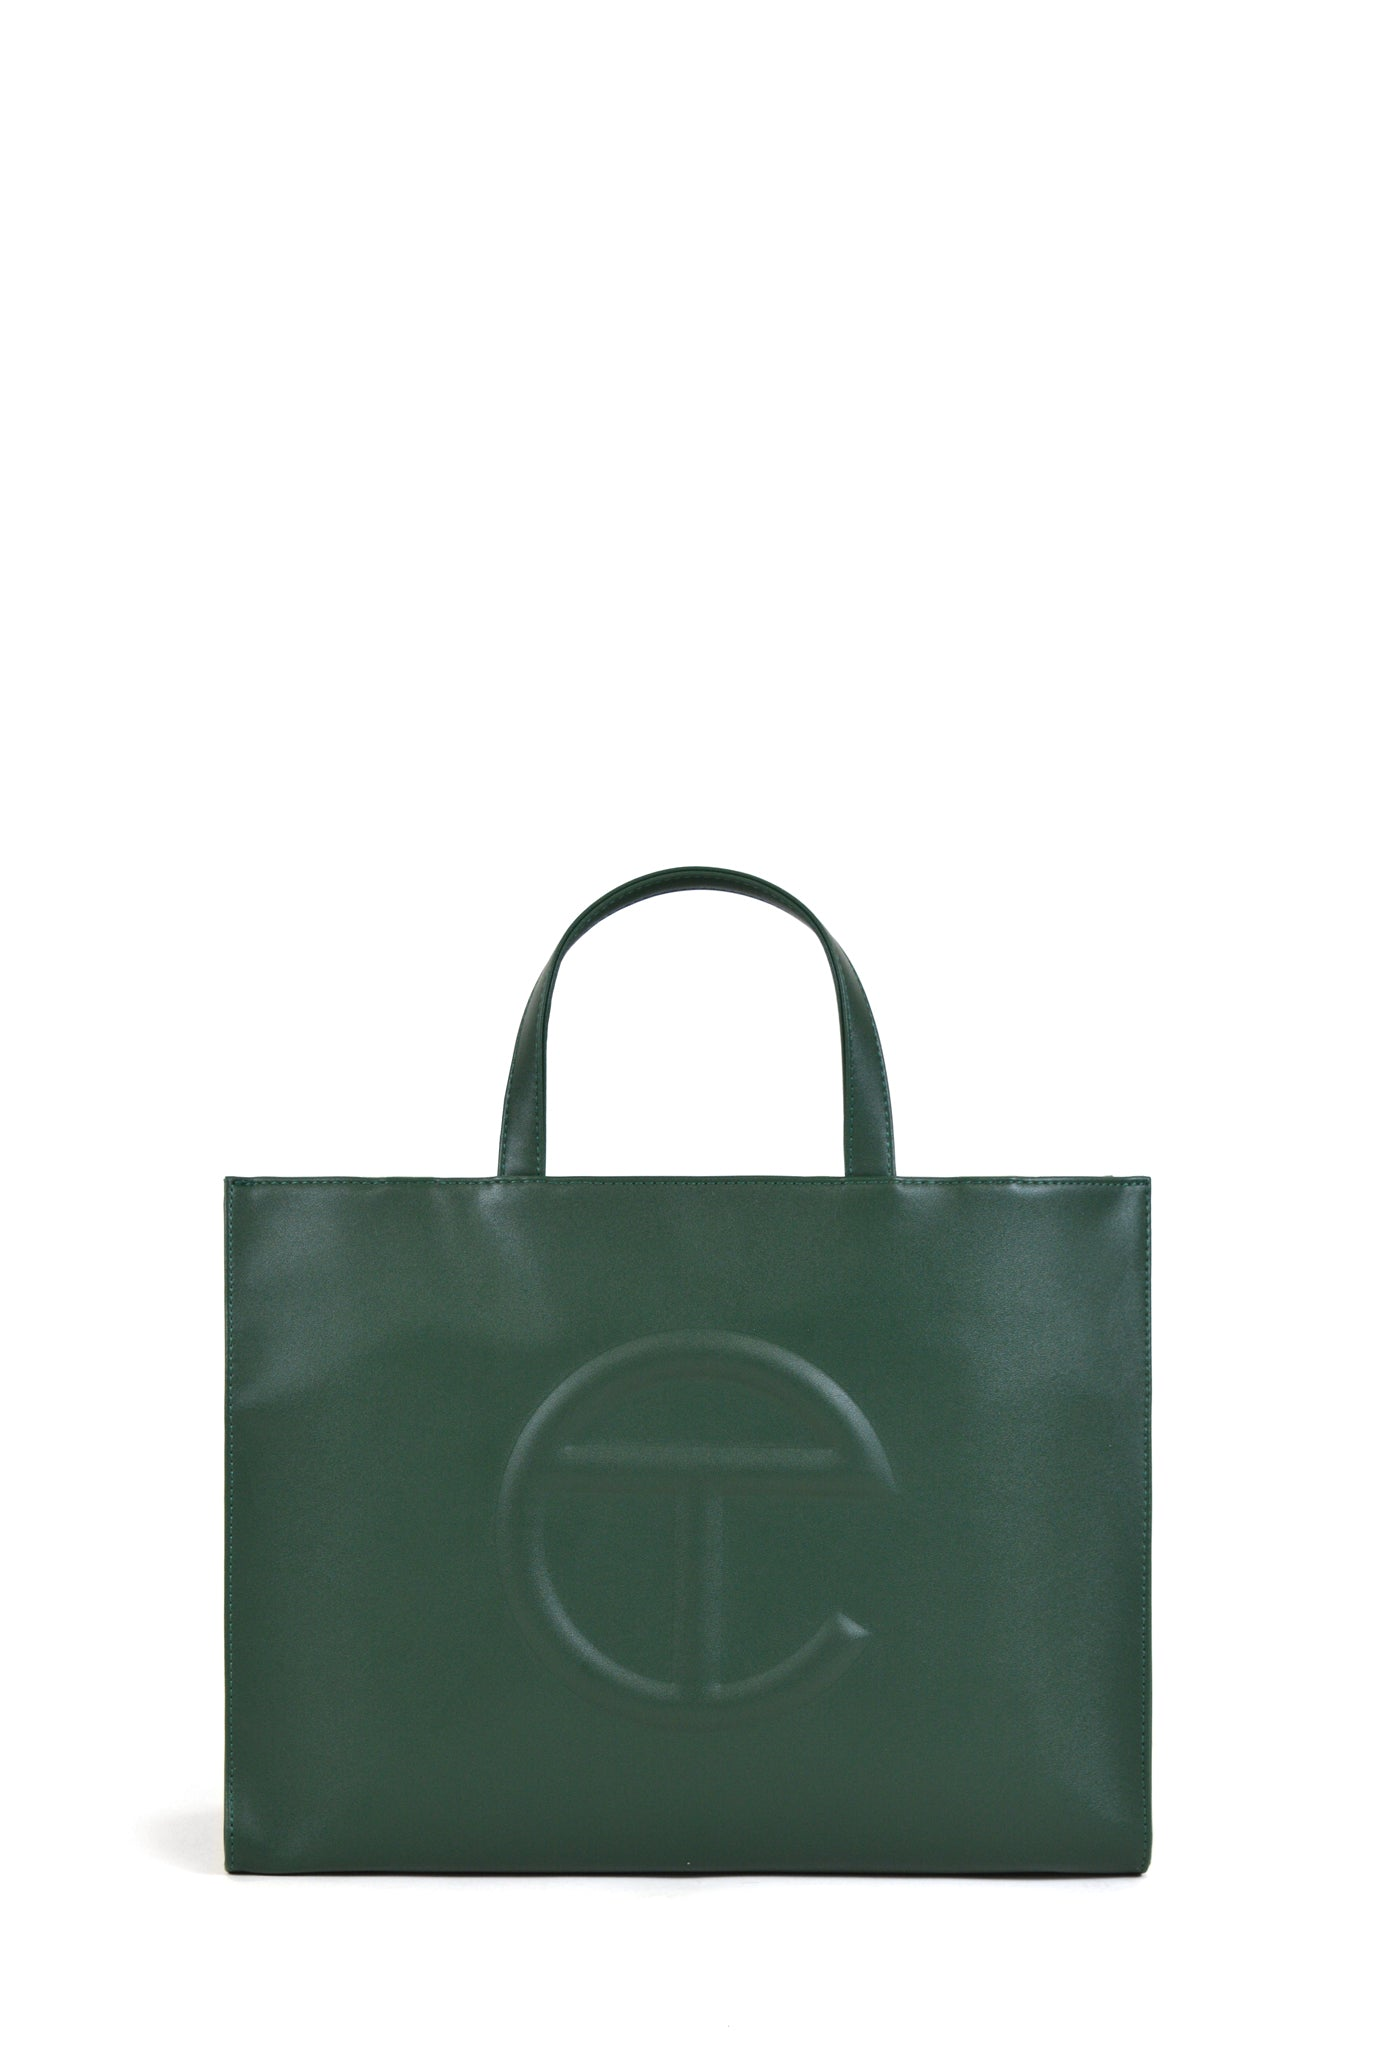 Telfar Medium Shopping Bag, Dark Olive